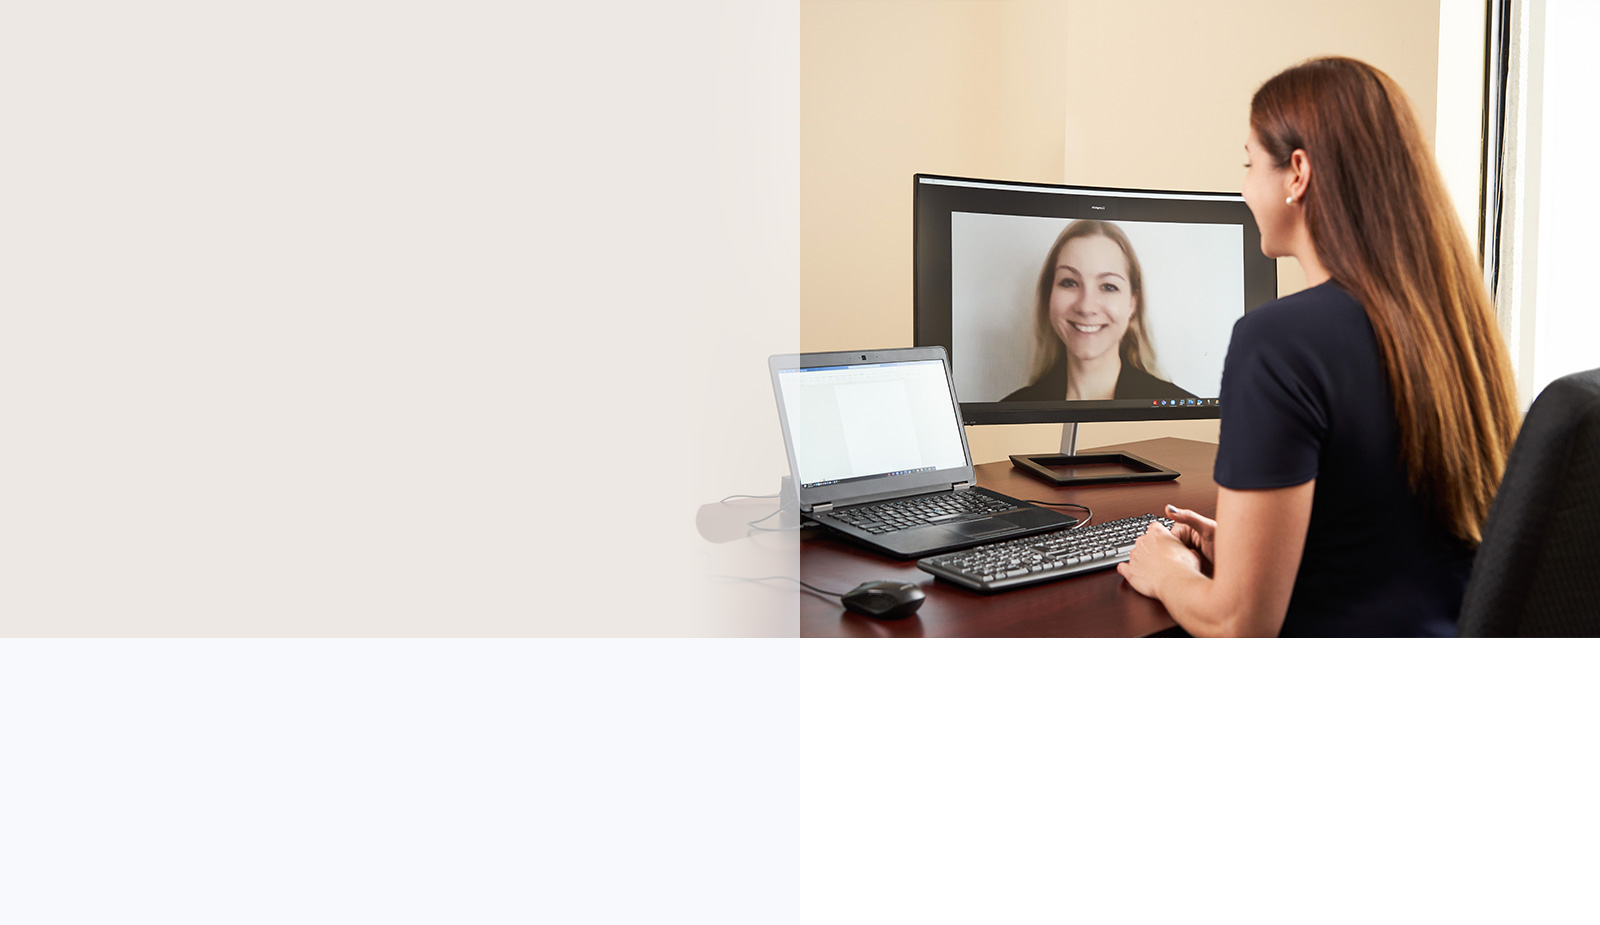 Lawyers Lisa Langevin and Zoriana Priadka holding an online meeting